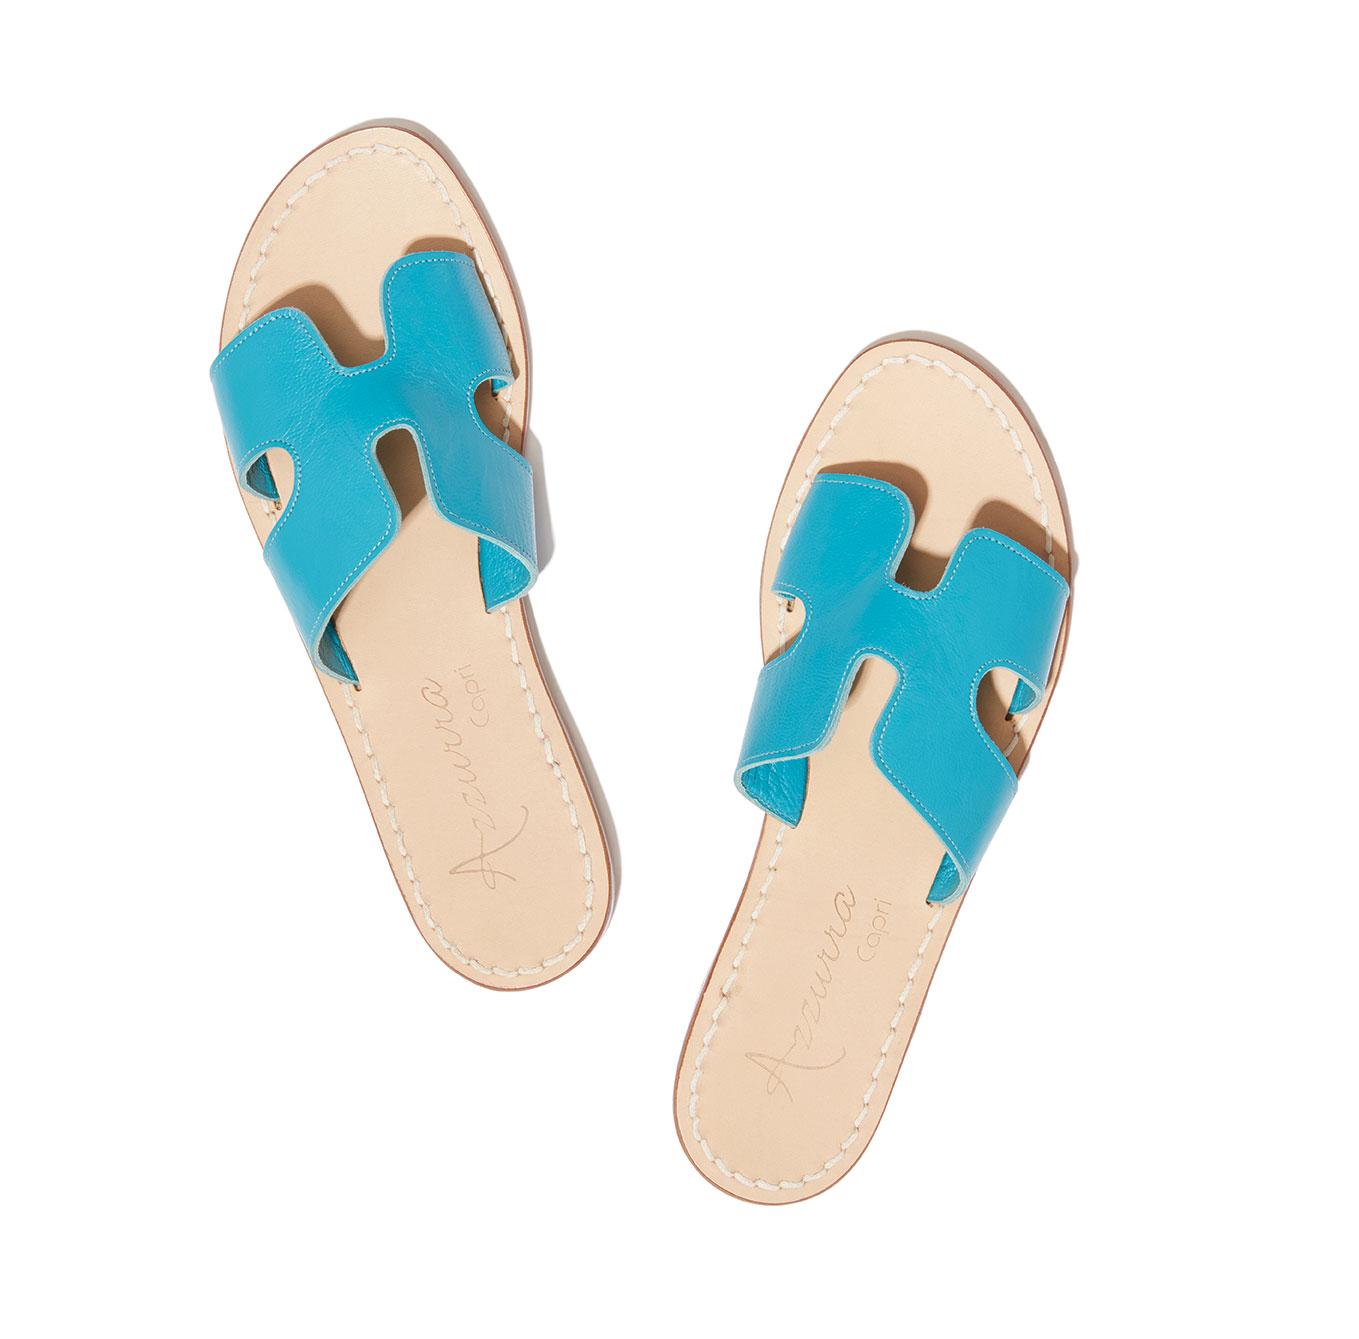 azzurra capri little itally san diego sandals boutique